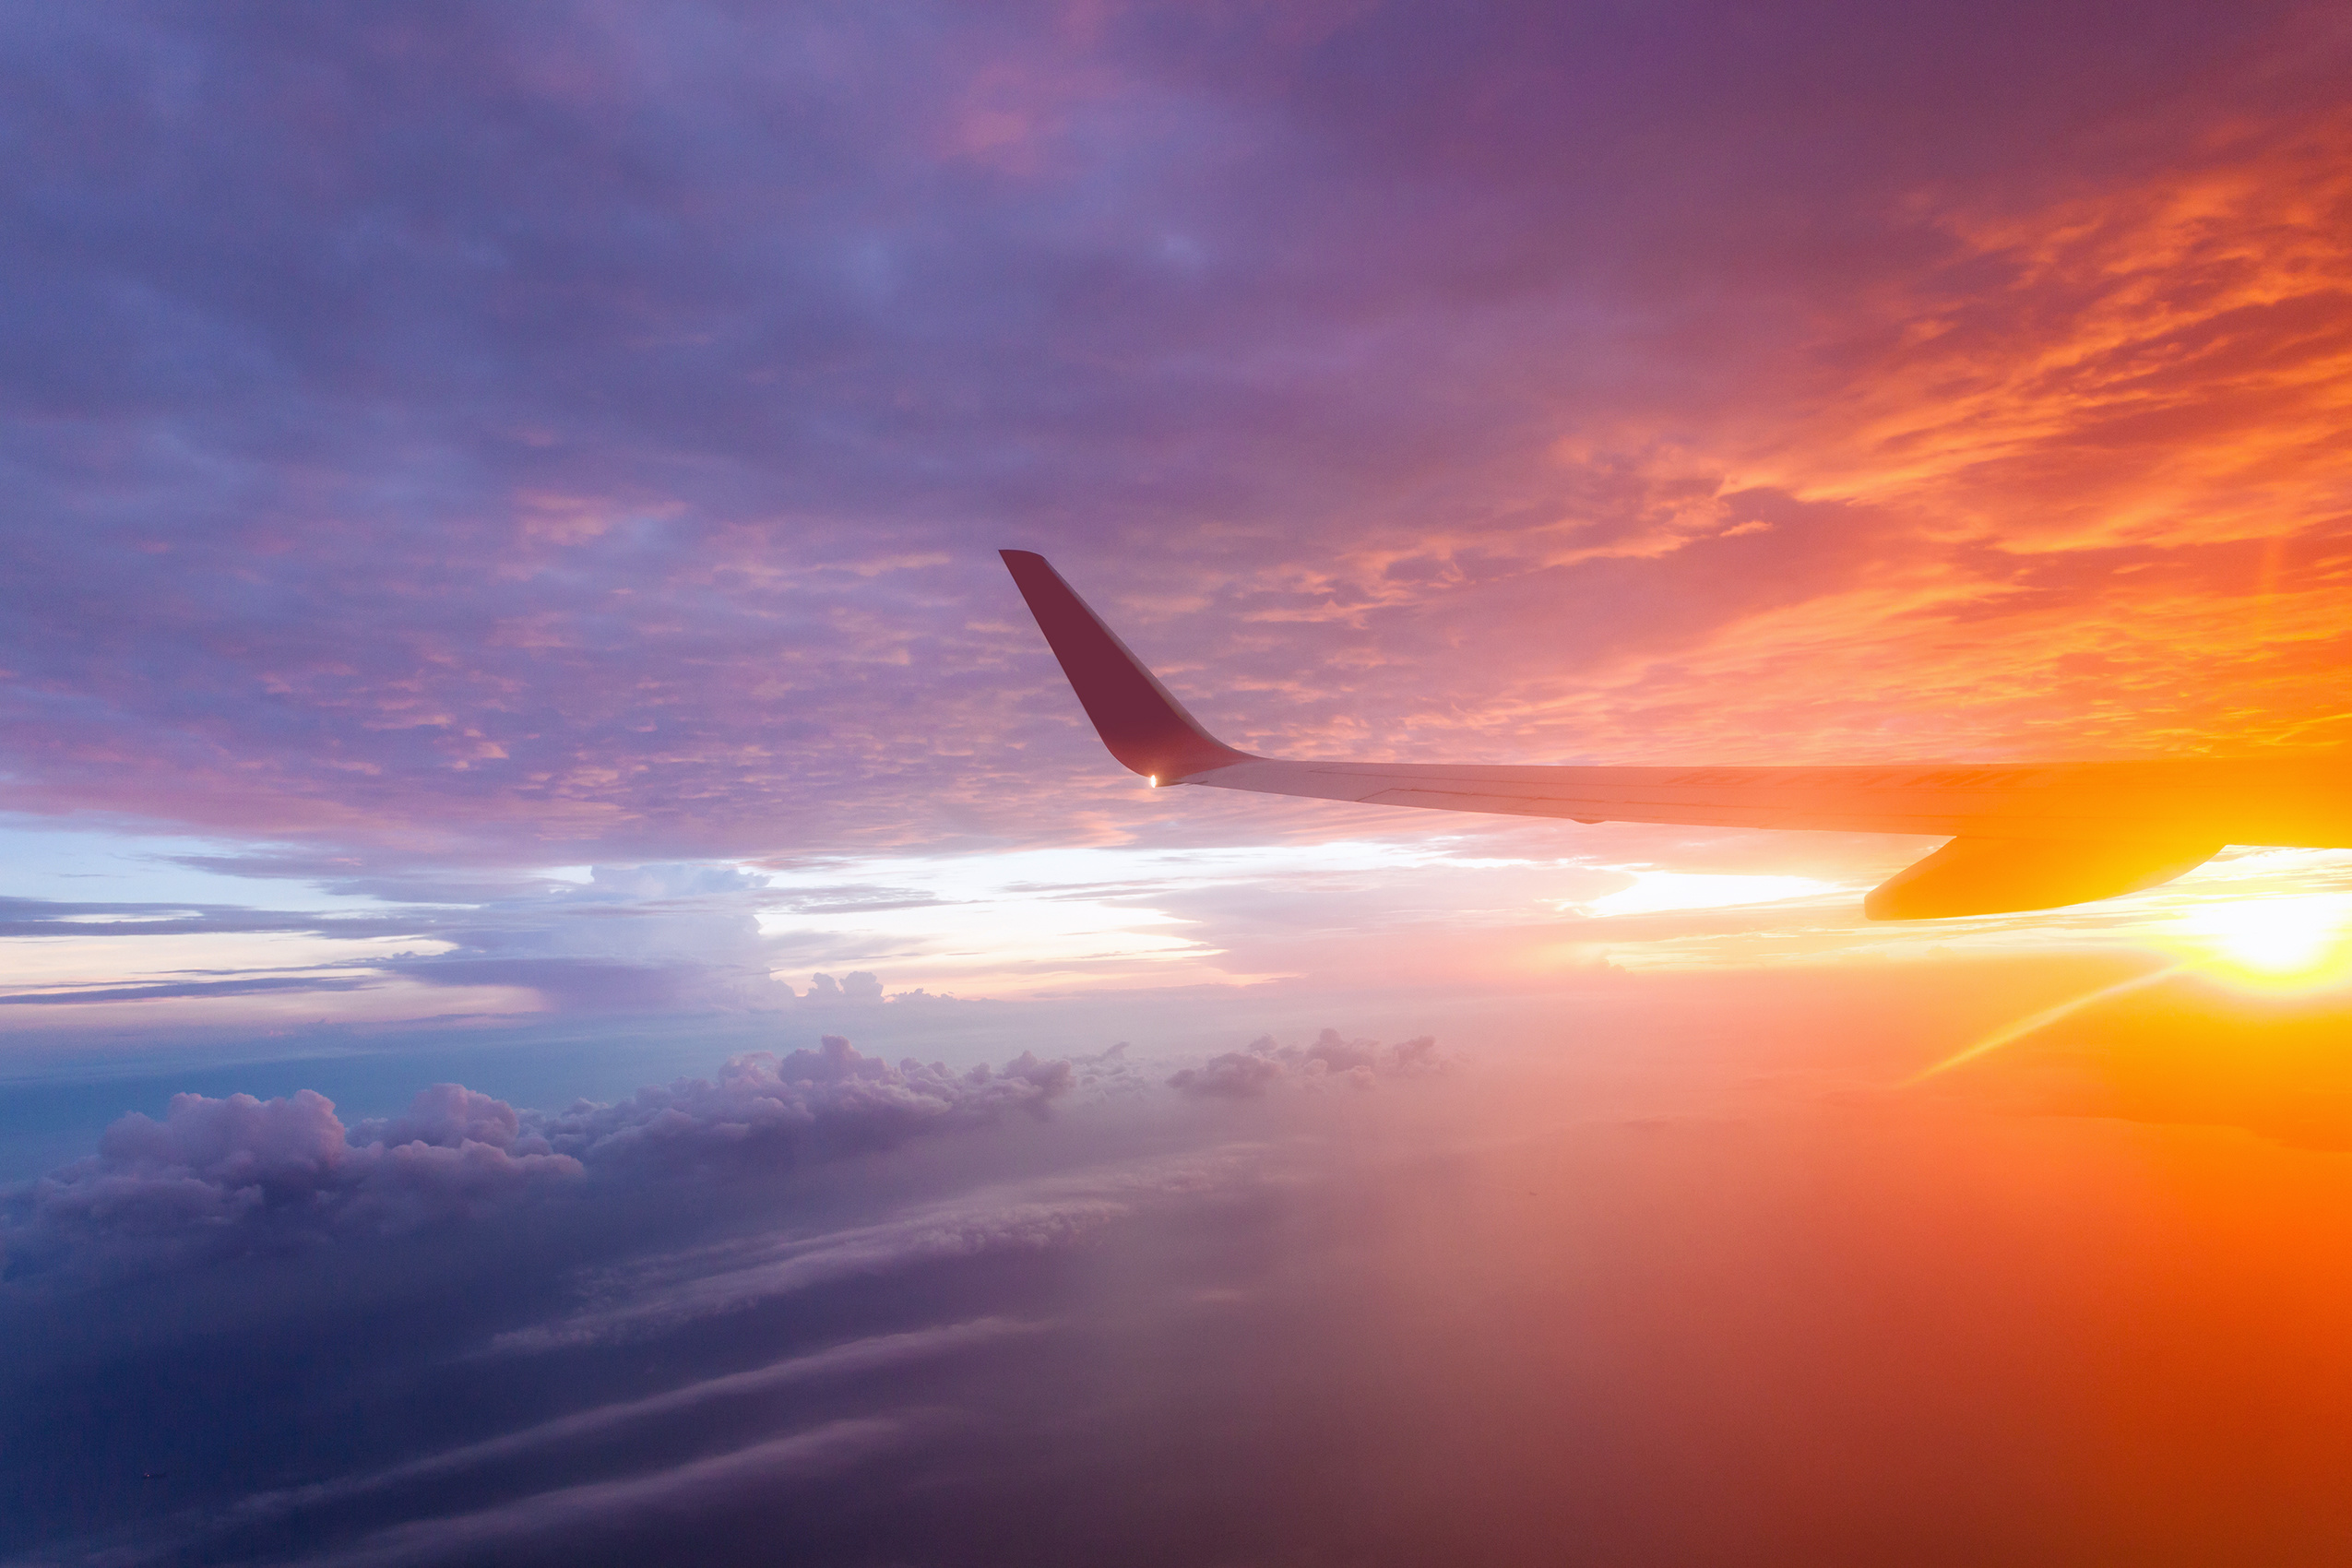 Flying in the sky and the sea of clouds. WiFi is now available on nearly half of all aeroplanes.